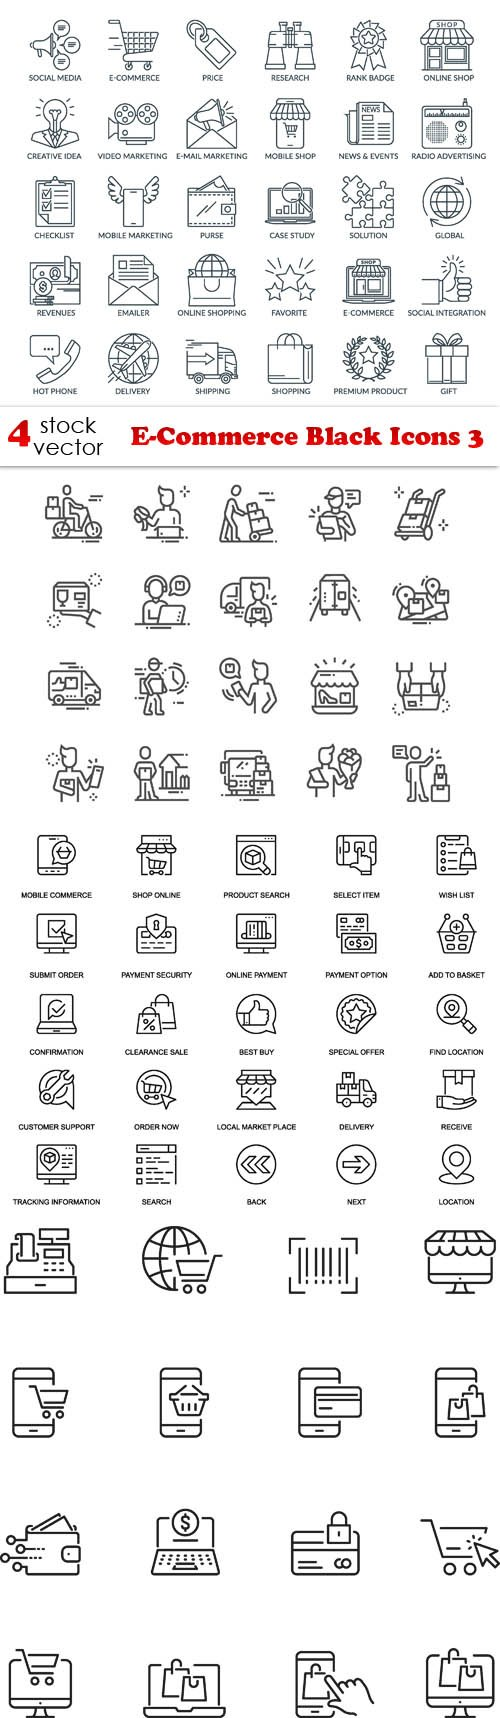 Vectors - E-Commerce Black Icons 3